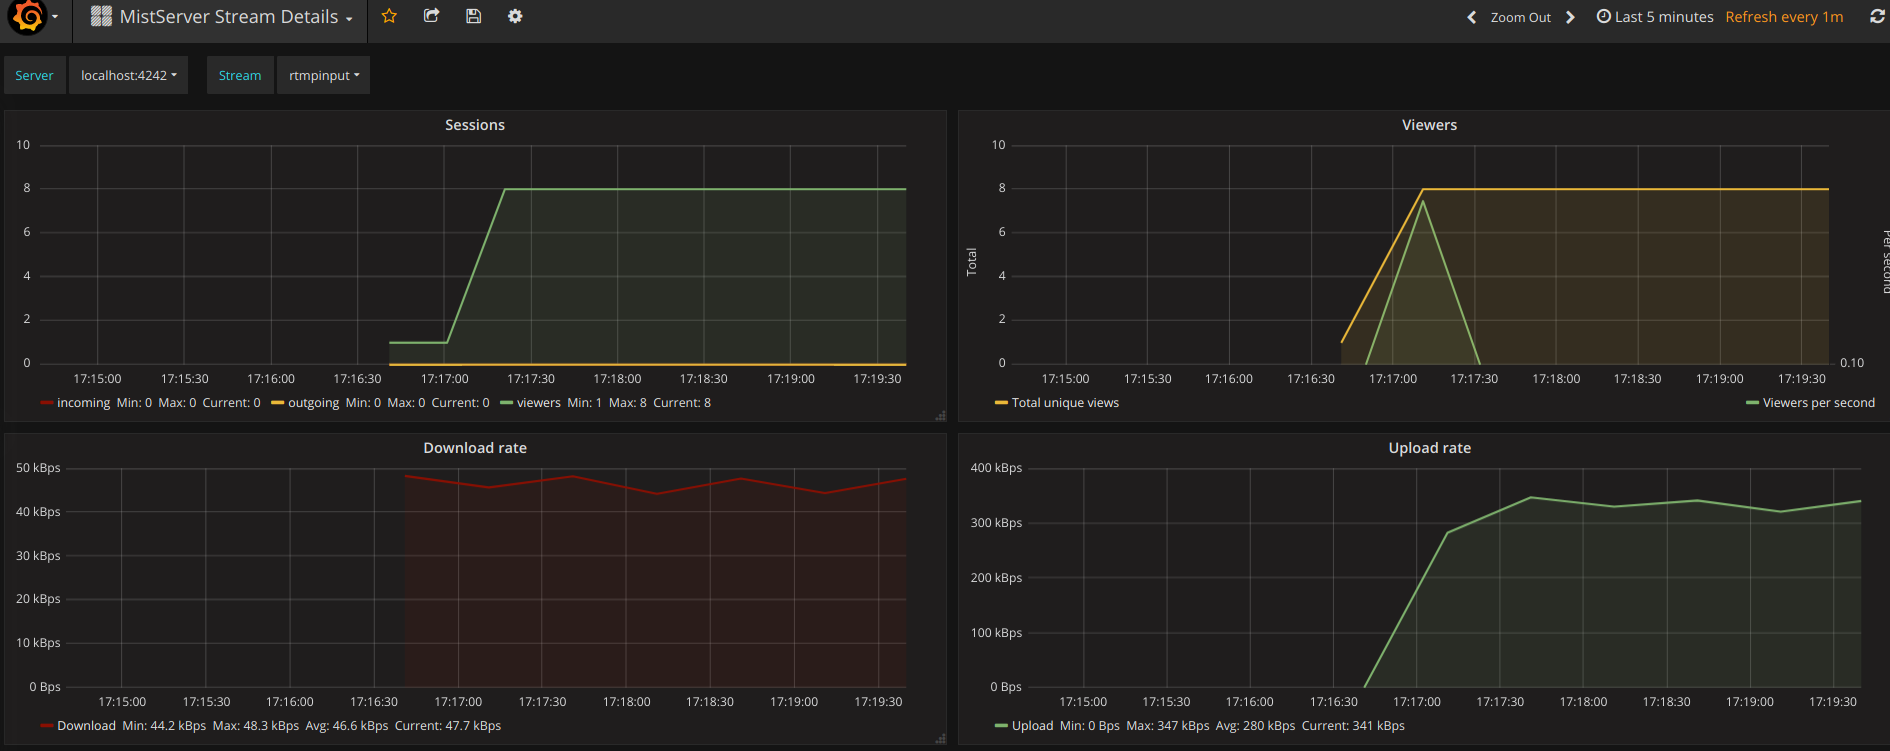 Image of the MistServer Stream Details Dashboard in grafana